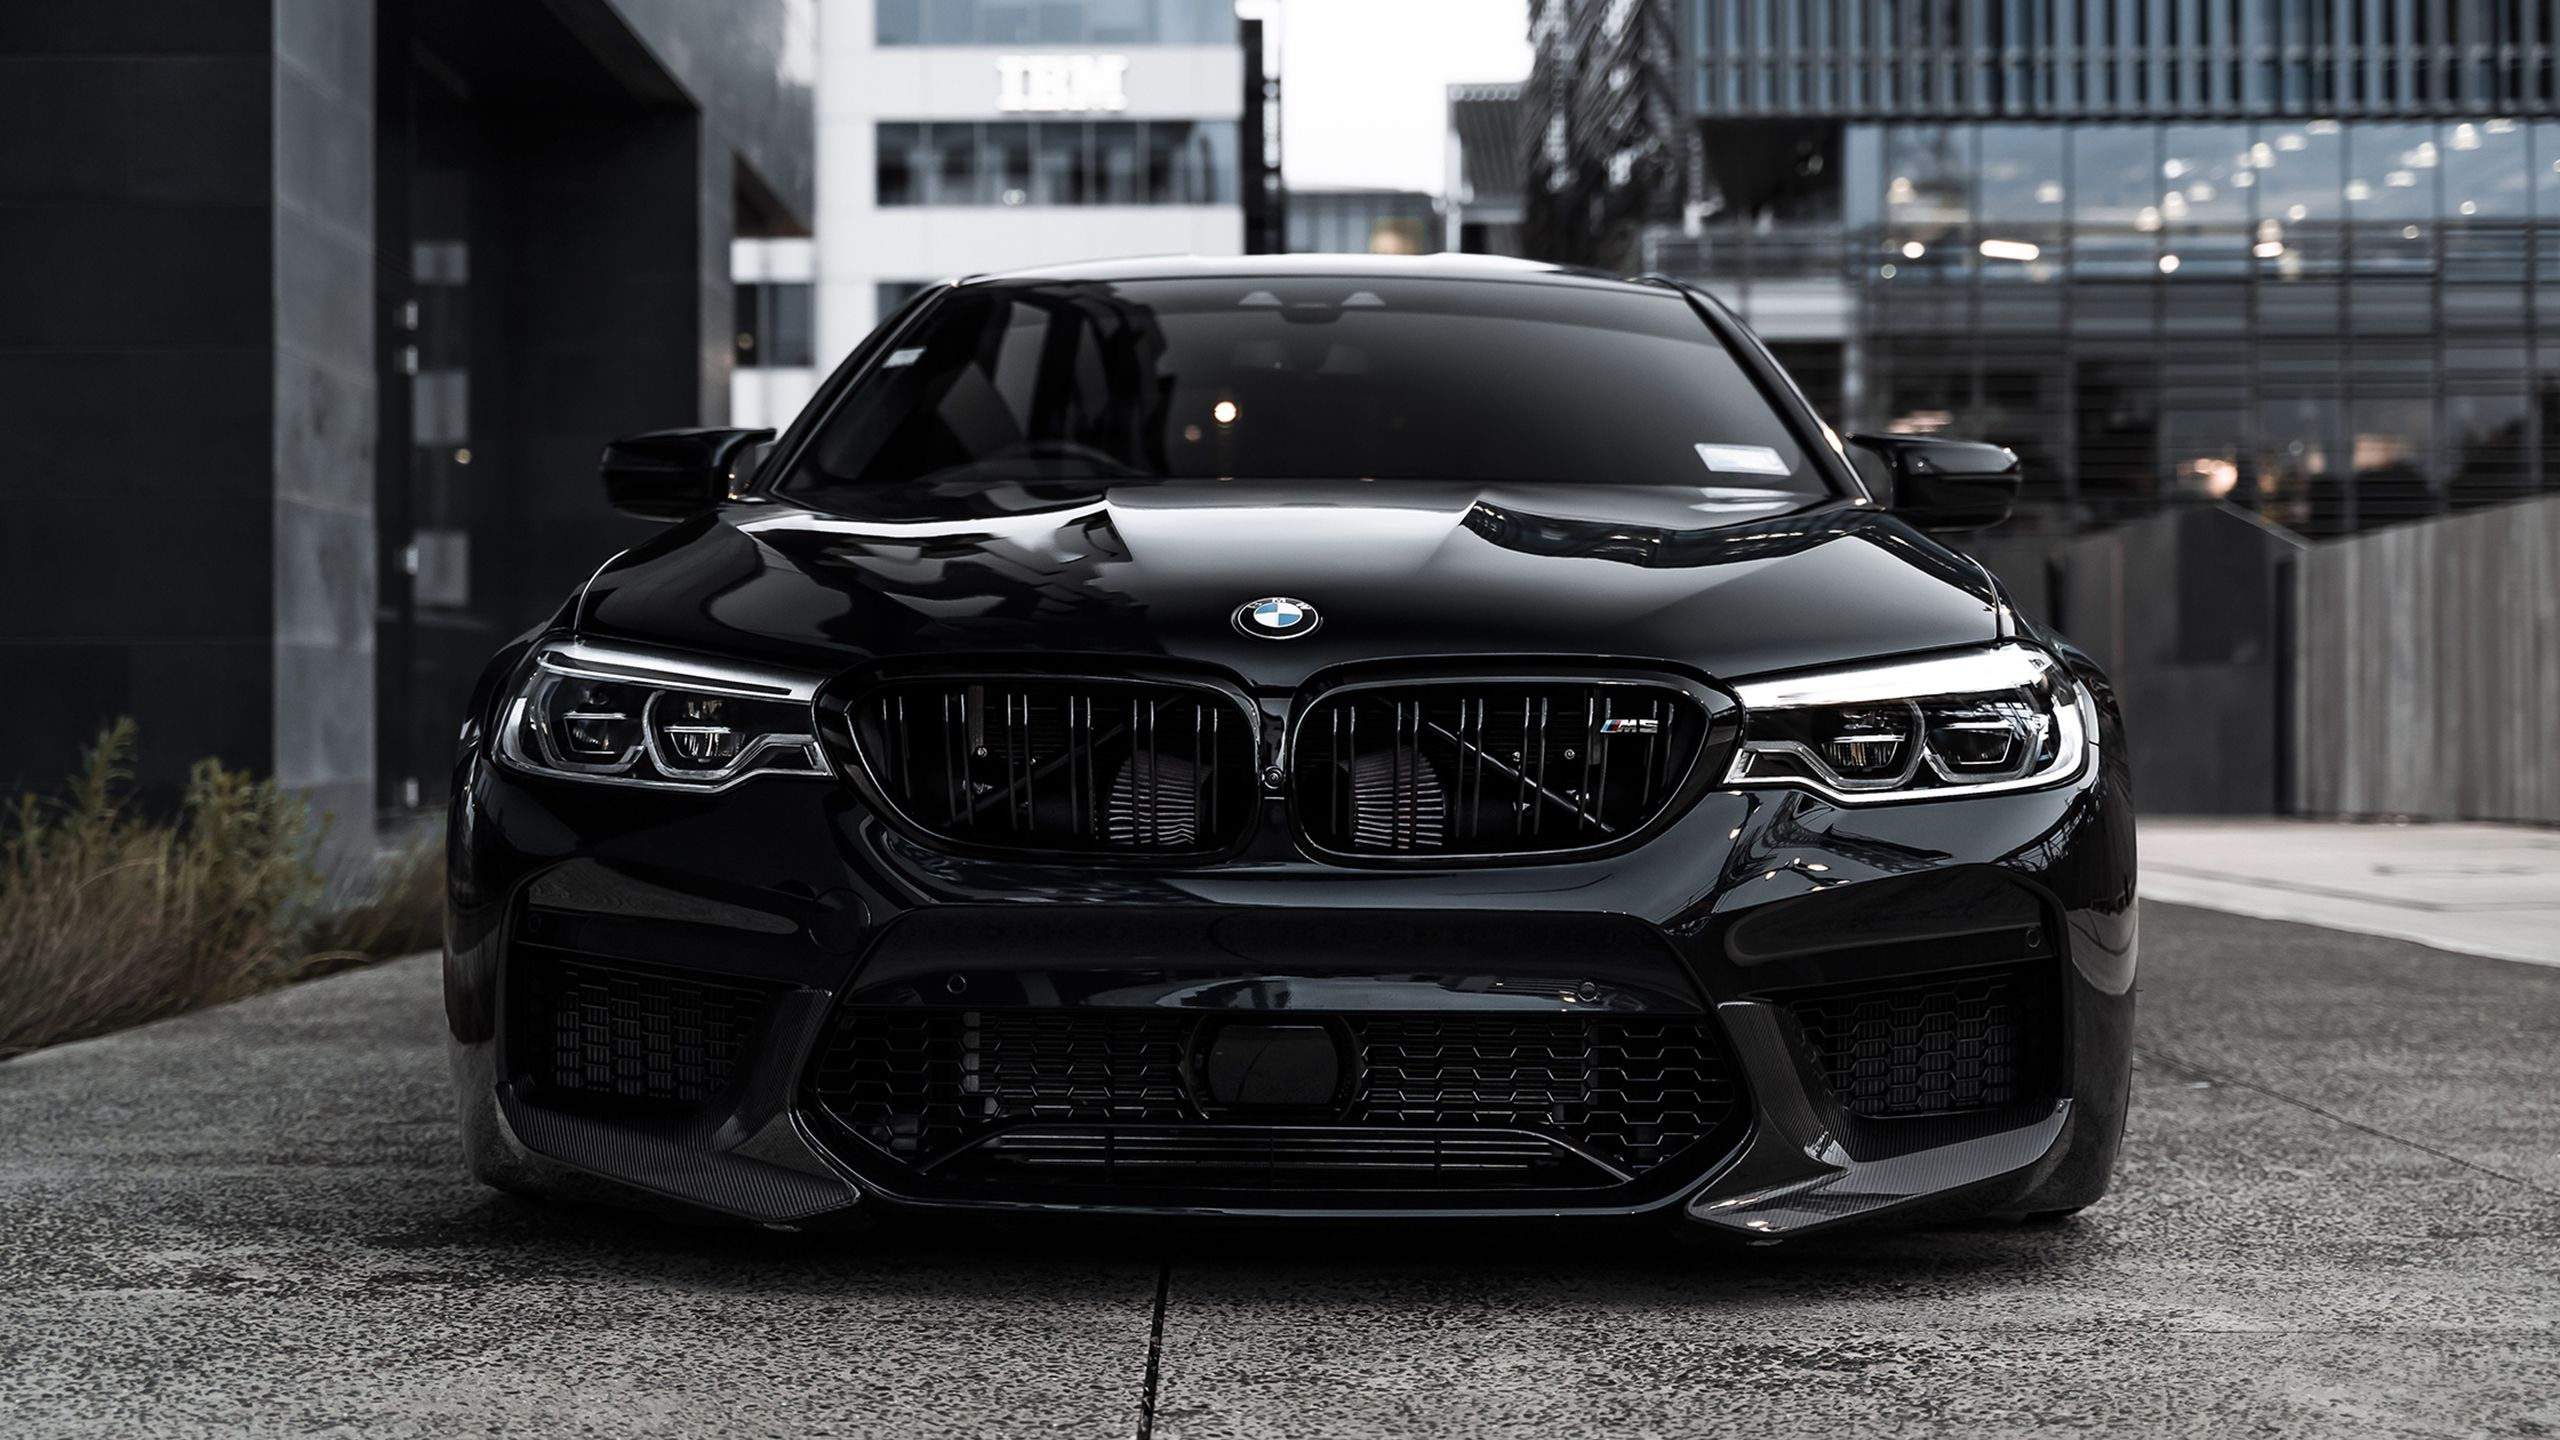 BMW F90 Wallpapers   Top BMW F90 Backgrounds   WallpaperAccess 2560x1440